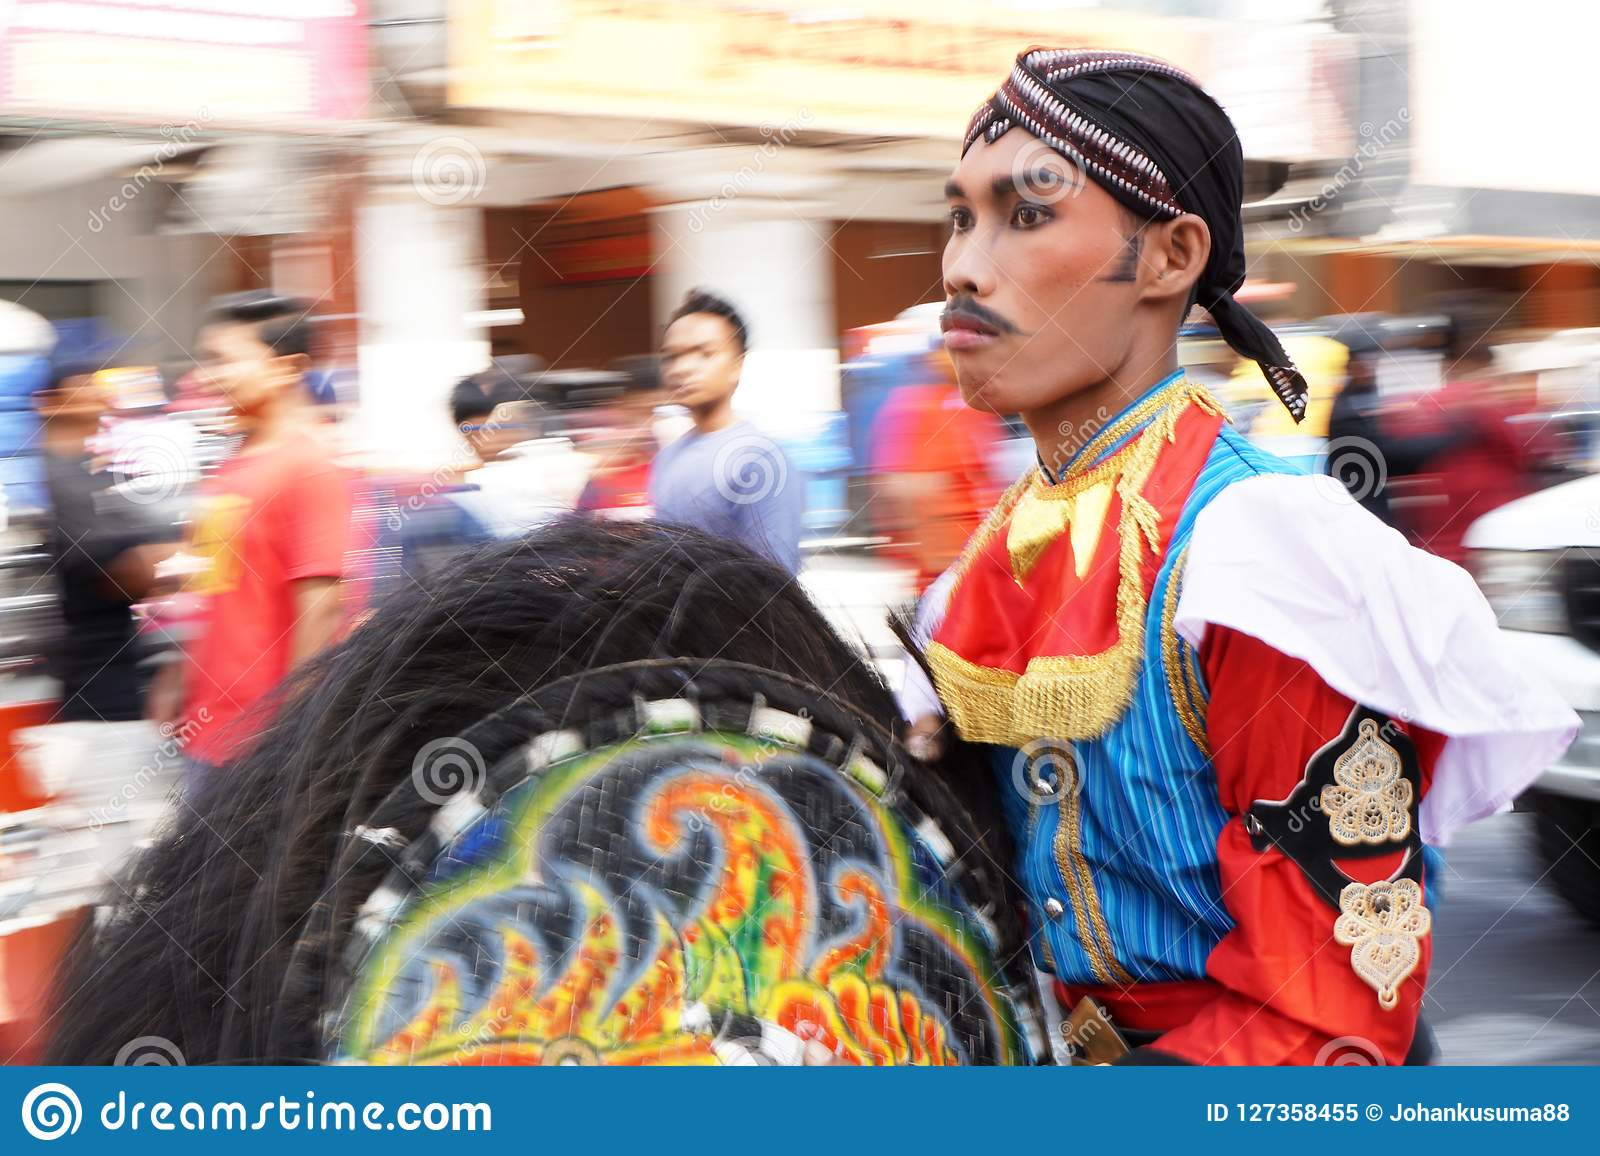 Man in traditional costumes are parading on Malioboro street, Yogyakarta. Photos taken with panning techniques